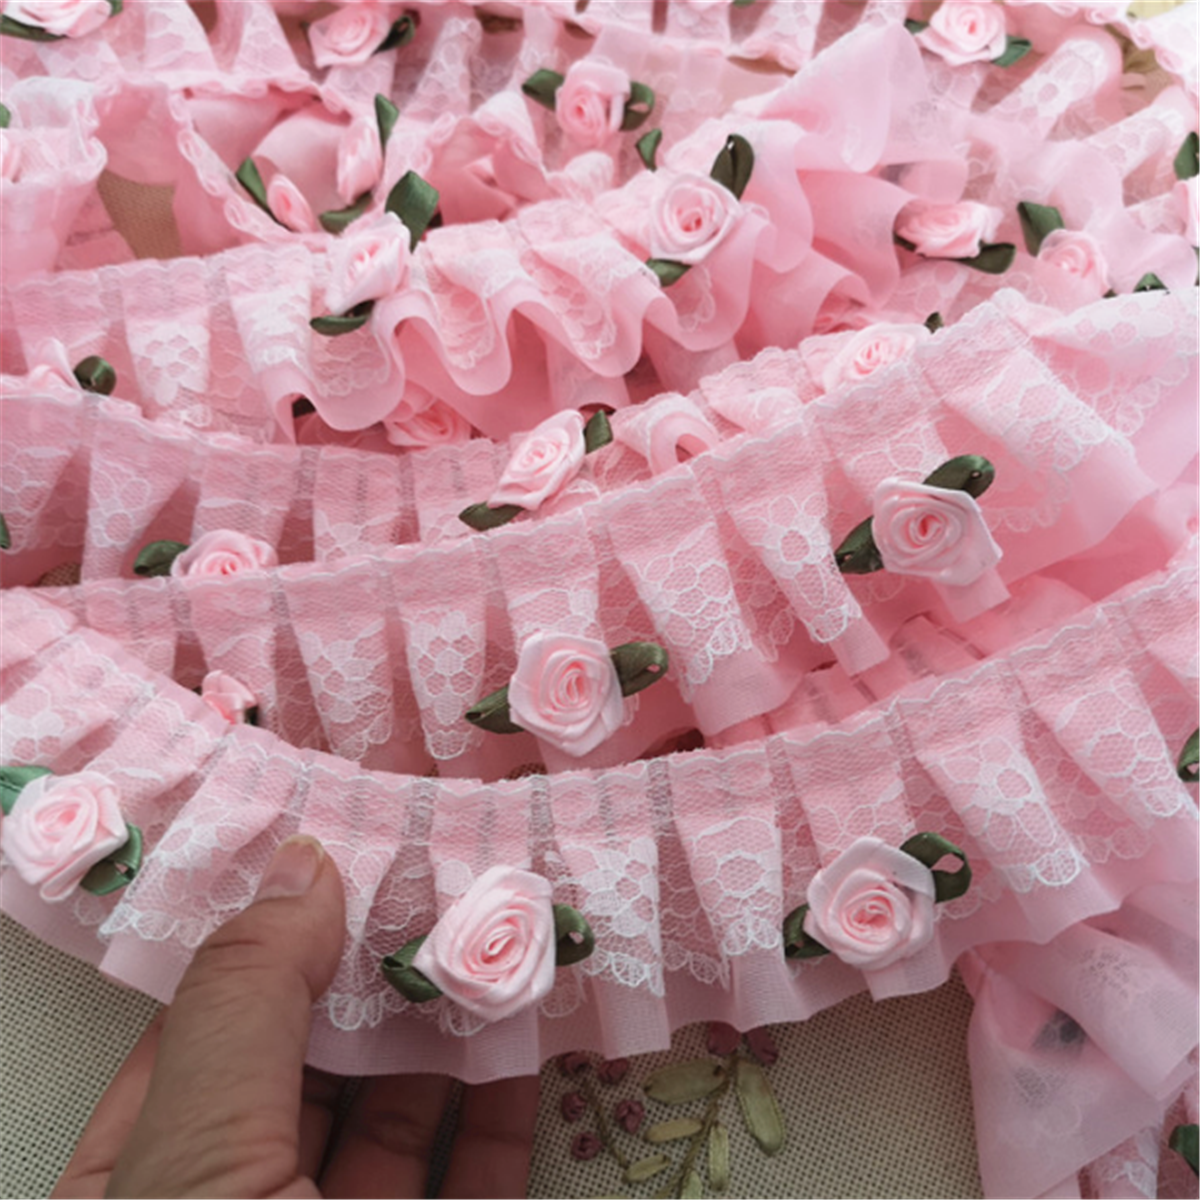 MOUSSELINE SHEER ELASTIC PASTEL PEACH AVAILABLE IN 15MM OR 25MM DIAMETER